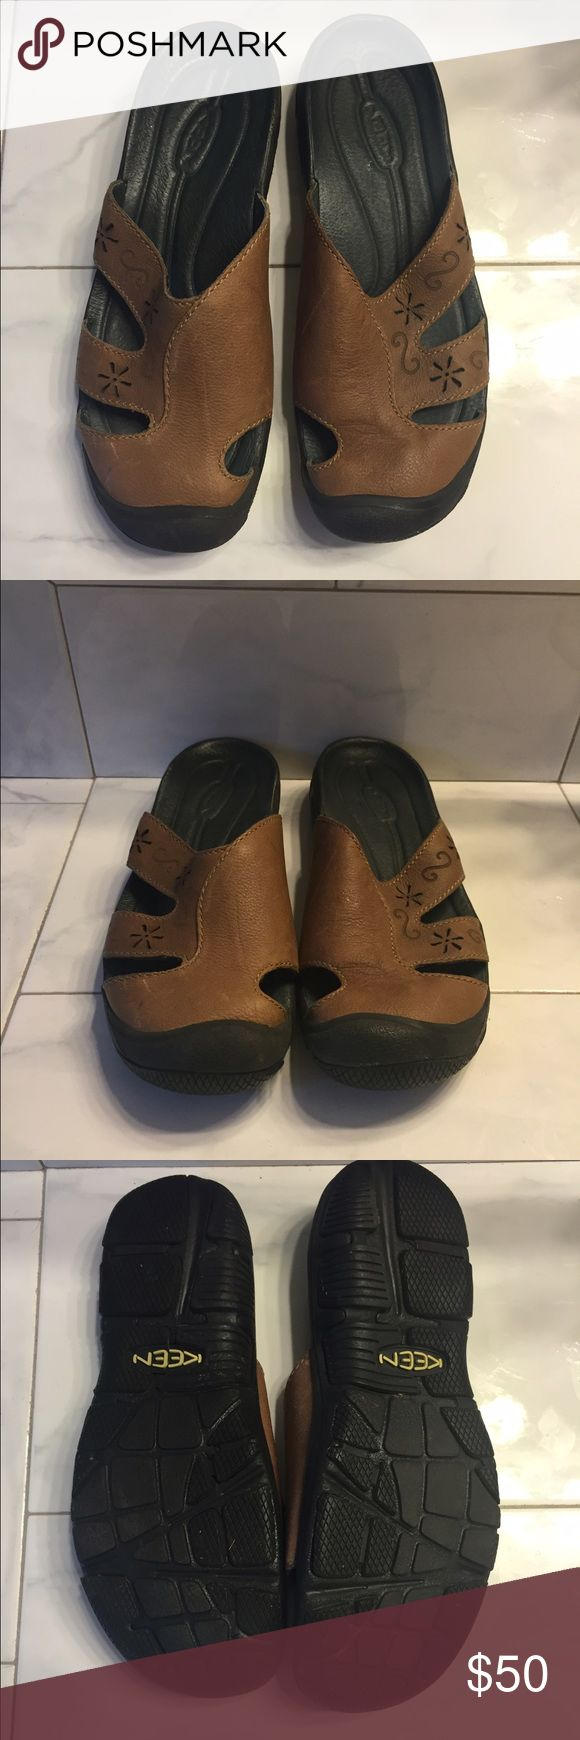 Keen Women's clogs NWOT brown leather Sz 9 Keen clogs Sz 9 brown Leather slip ons and GO Keen Shoes Mules & Clogs